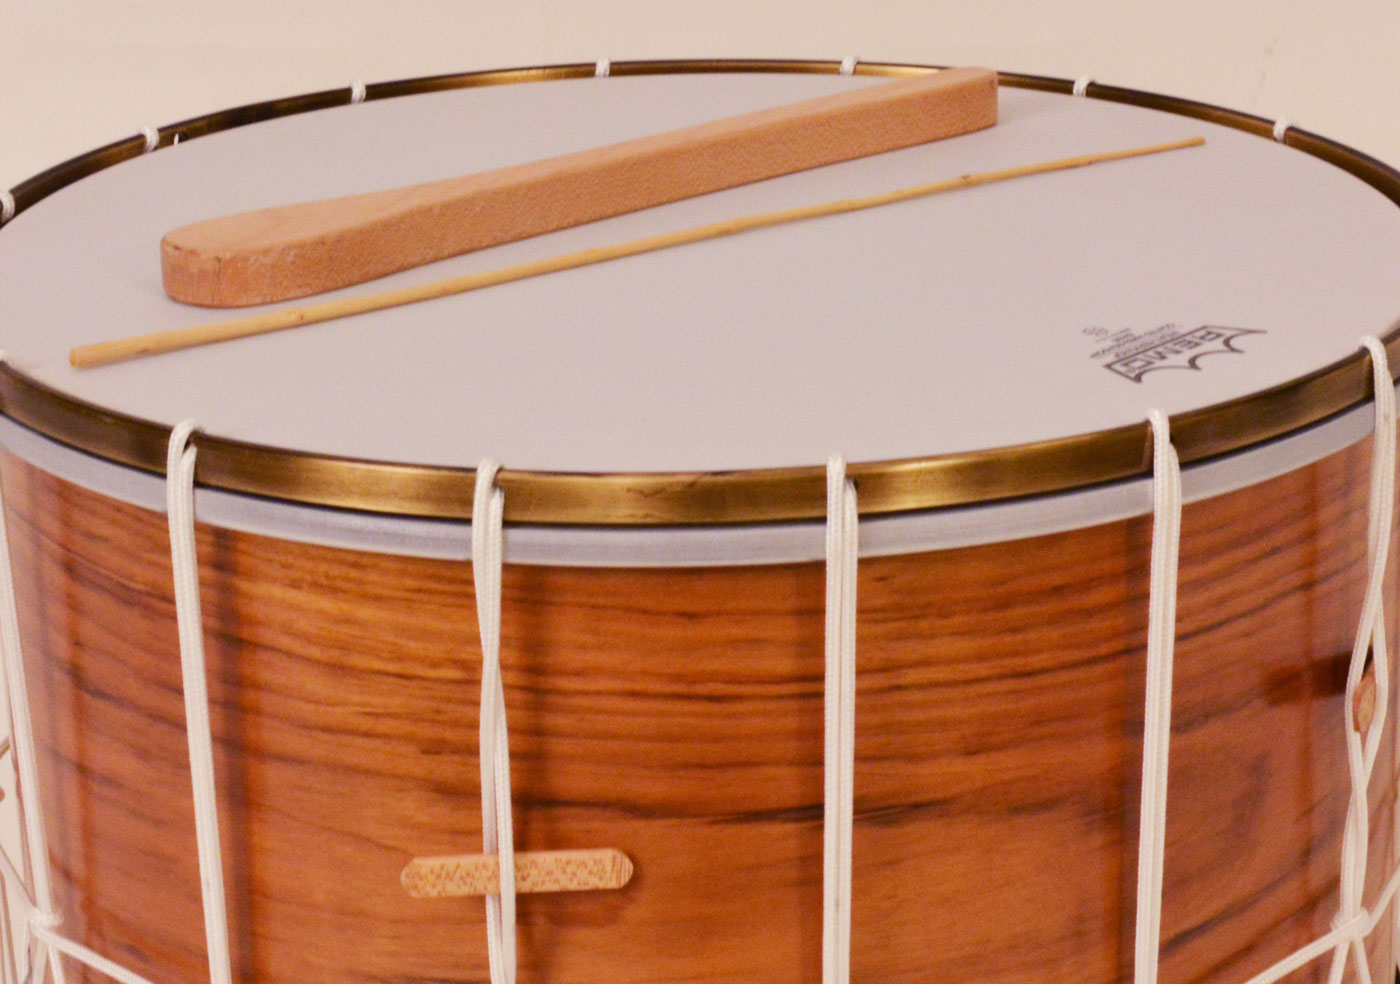 Traditional Hellenic Drums